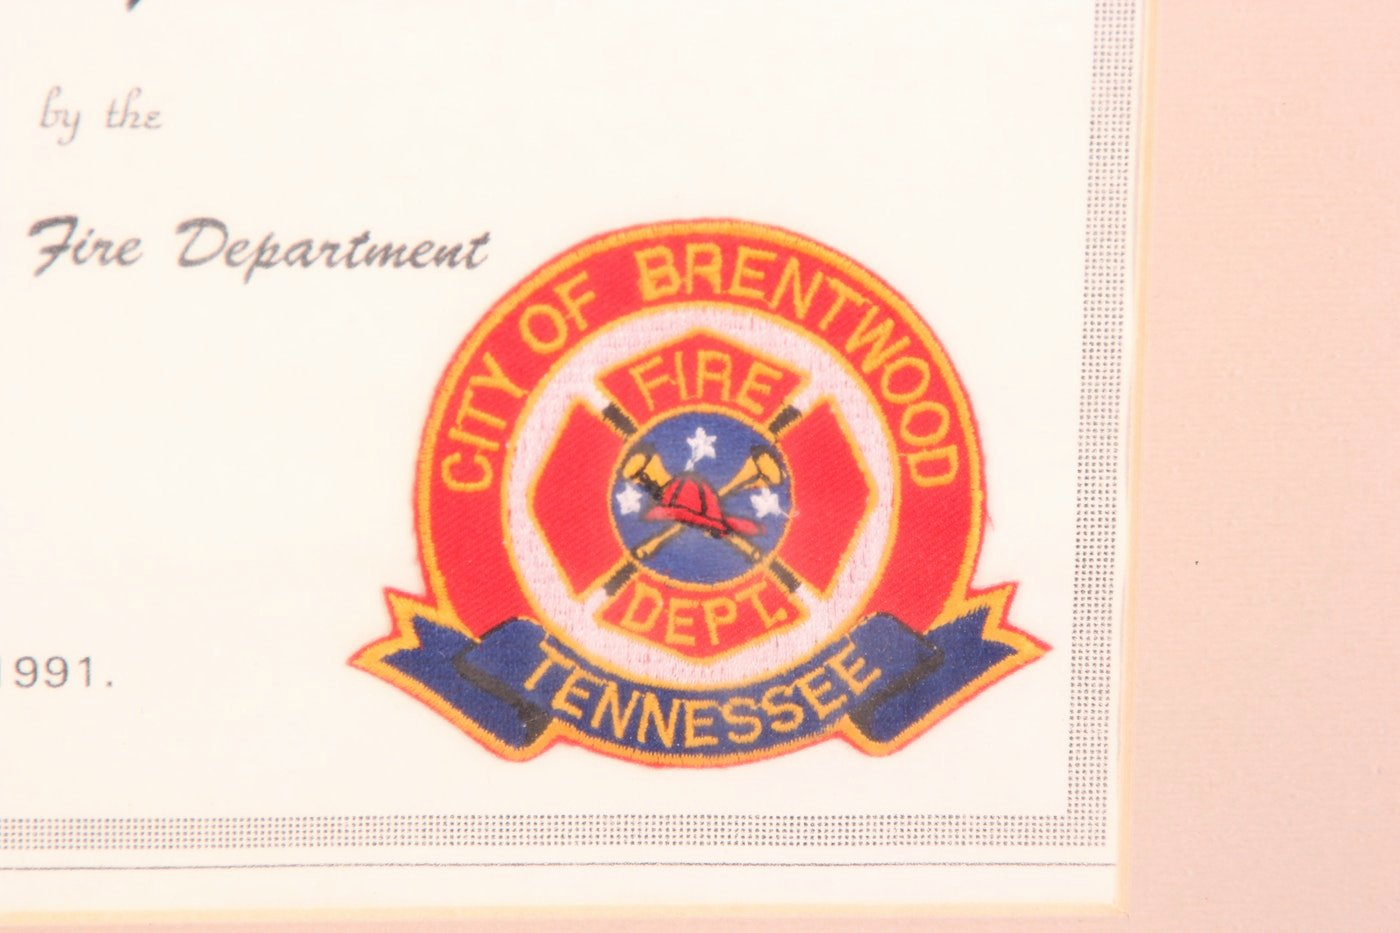 Honorary Firefighter Certificate Awesome Firefighter Helmet and Honorary Firefighter Plaque Ebth